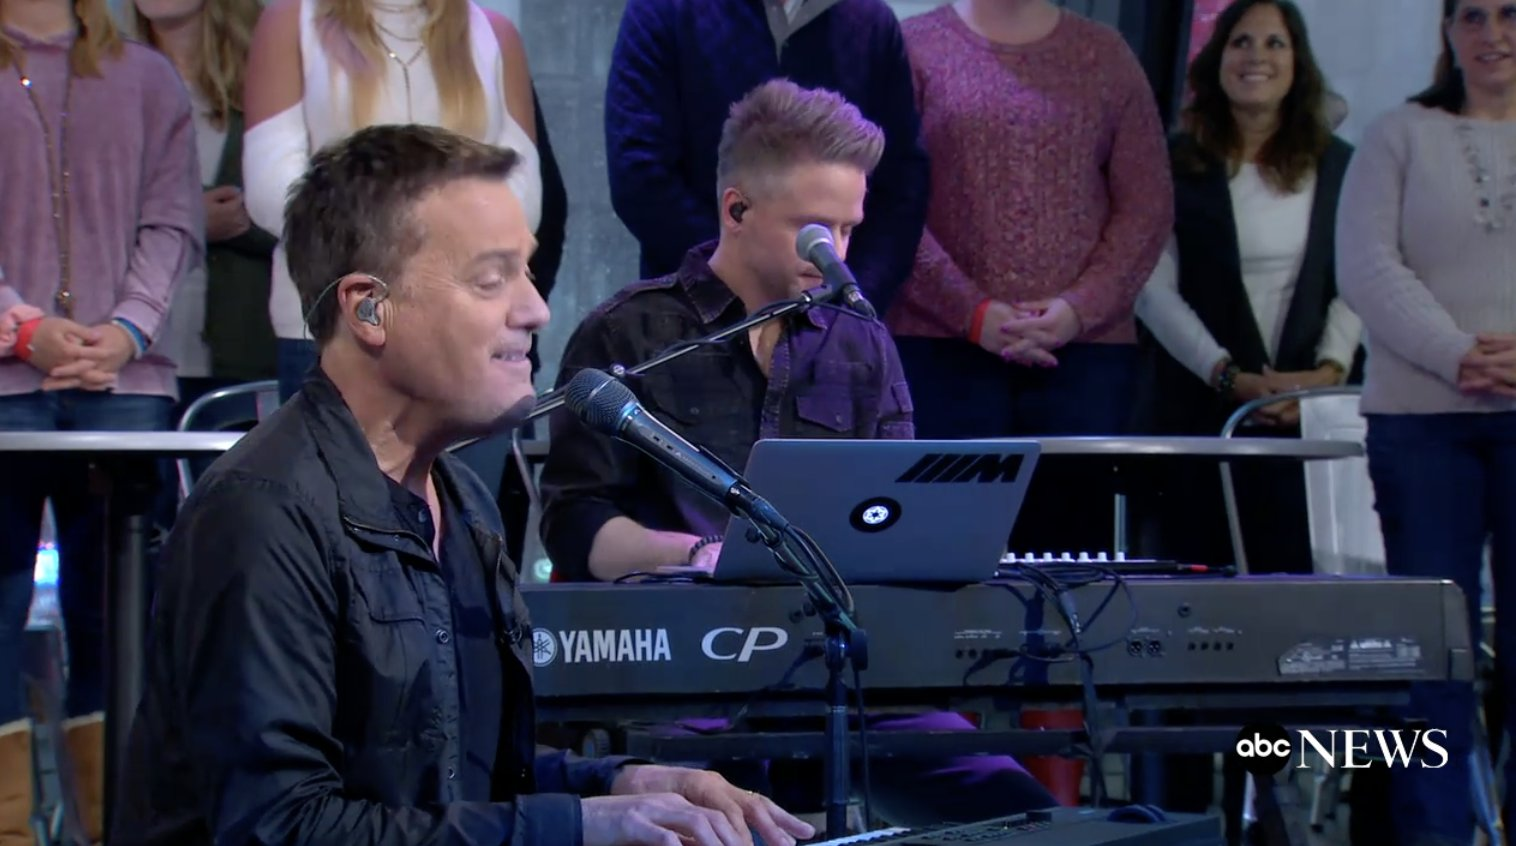 WEB EXCLUSIVE: @michaelwsmith gives a special live performance of 'A Million Lights' https://t.co/0hof4RpWqE https://t.co/YFgxQsyDpq